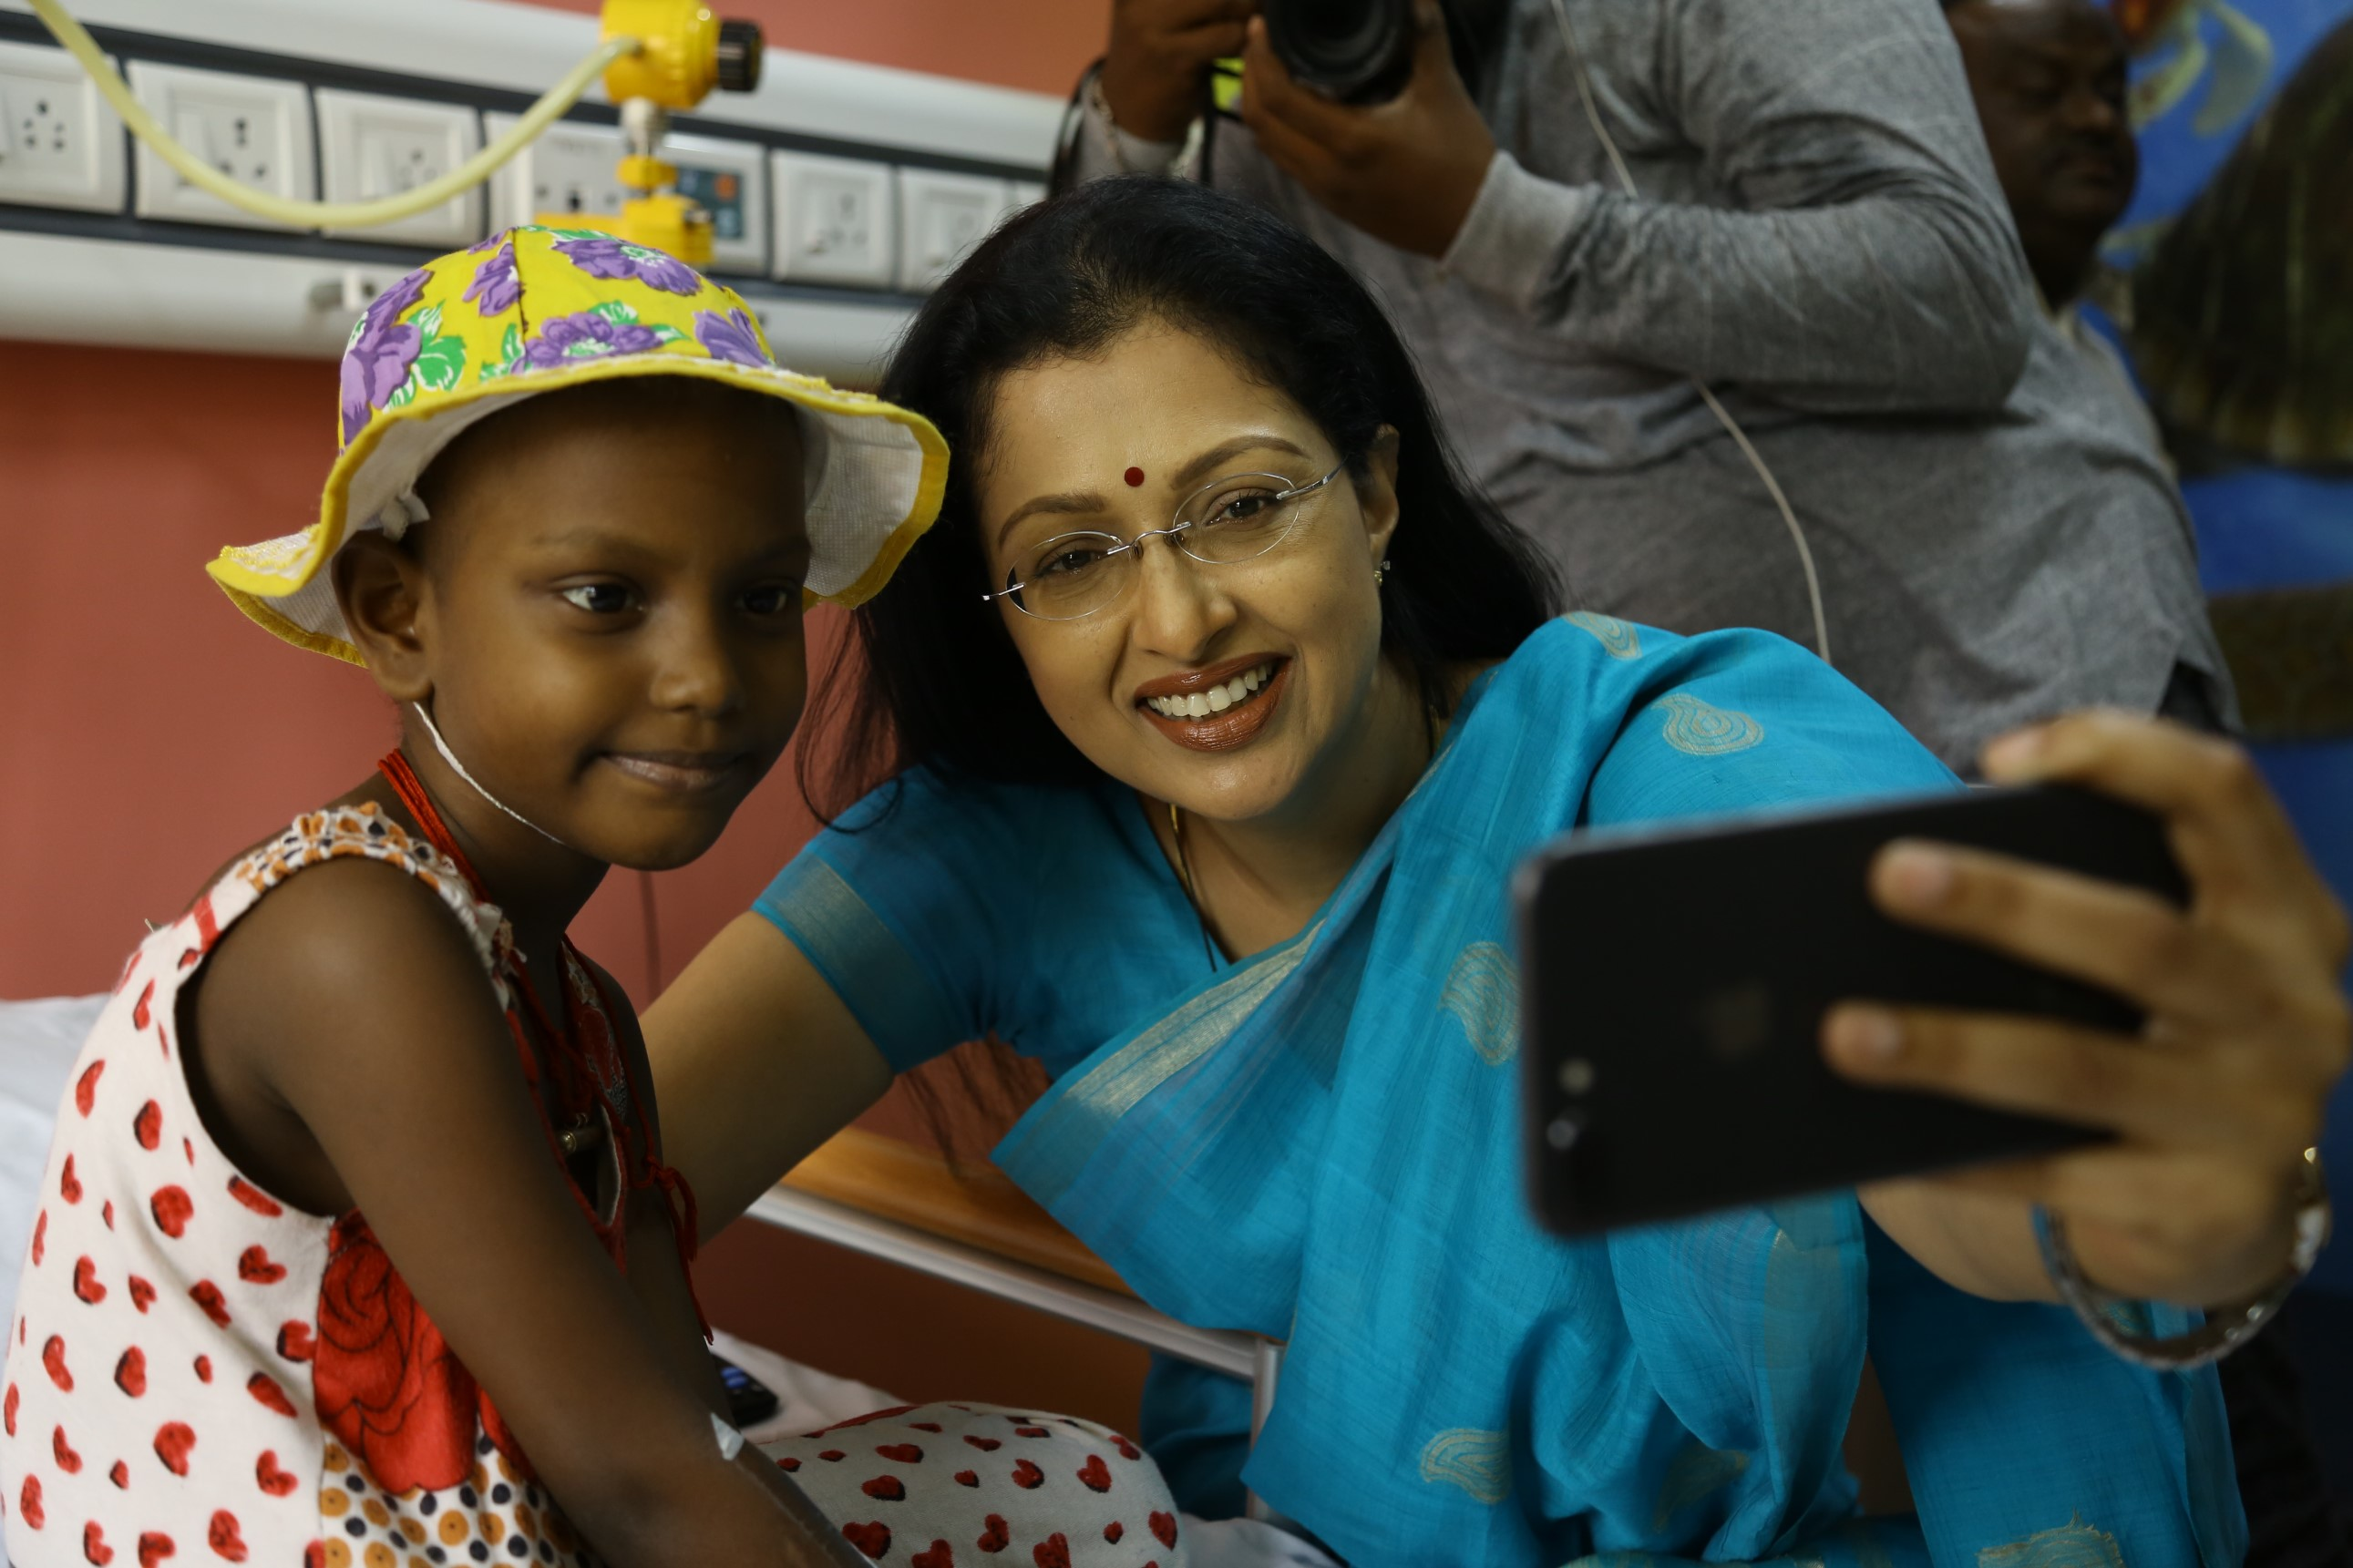 Gautami visited VS cancer hospital in Chennai